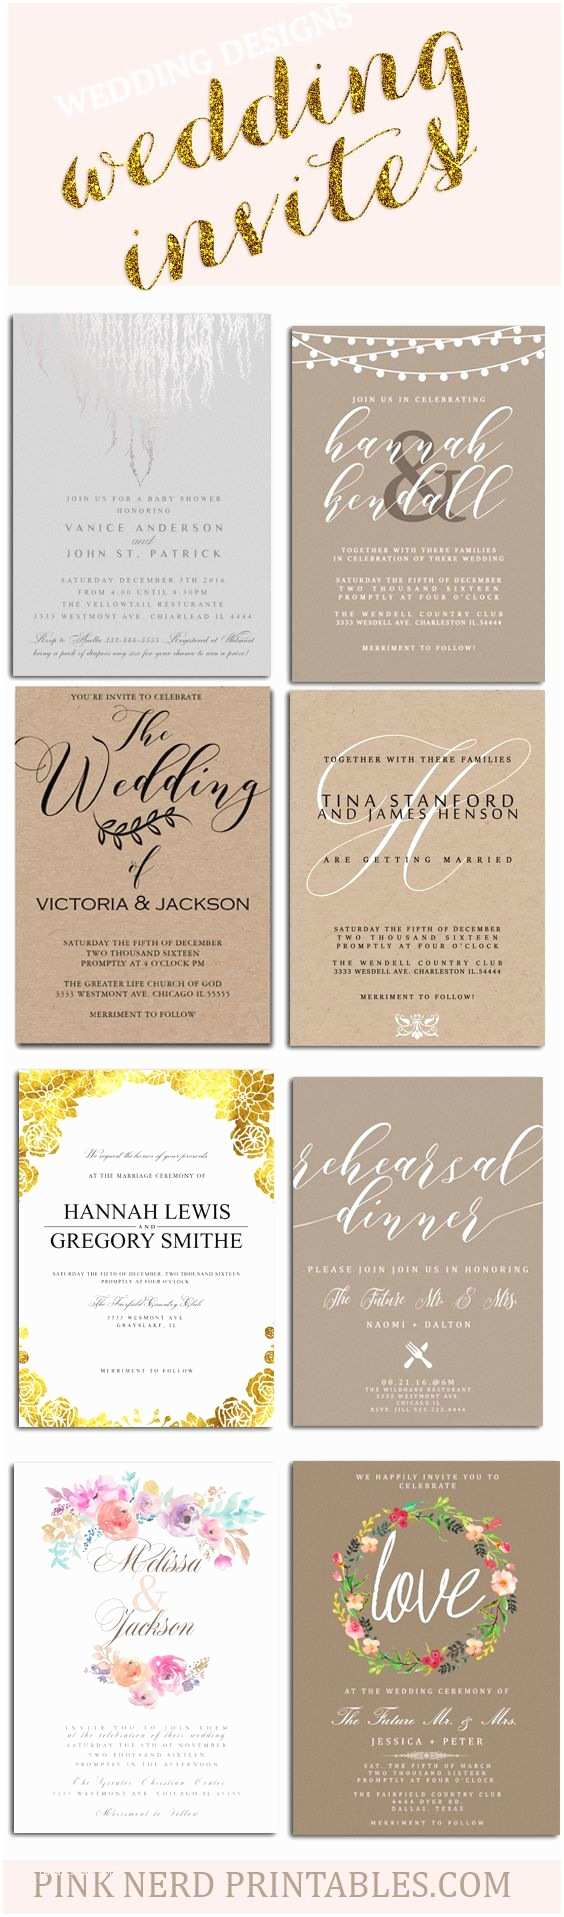 Cheap Rustic Country Wedding Invitations Best 25 Cheap Wedding Invitations Ideas On Pinterest